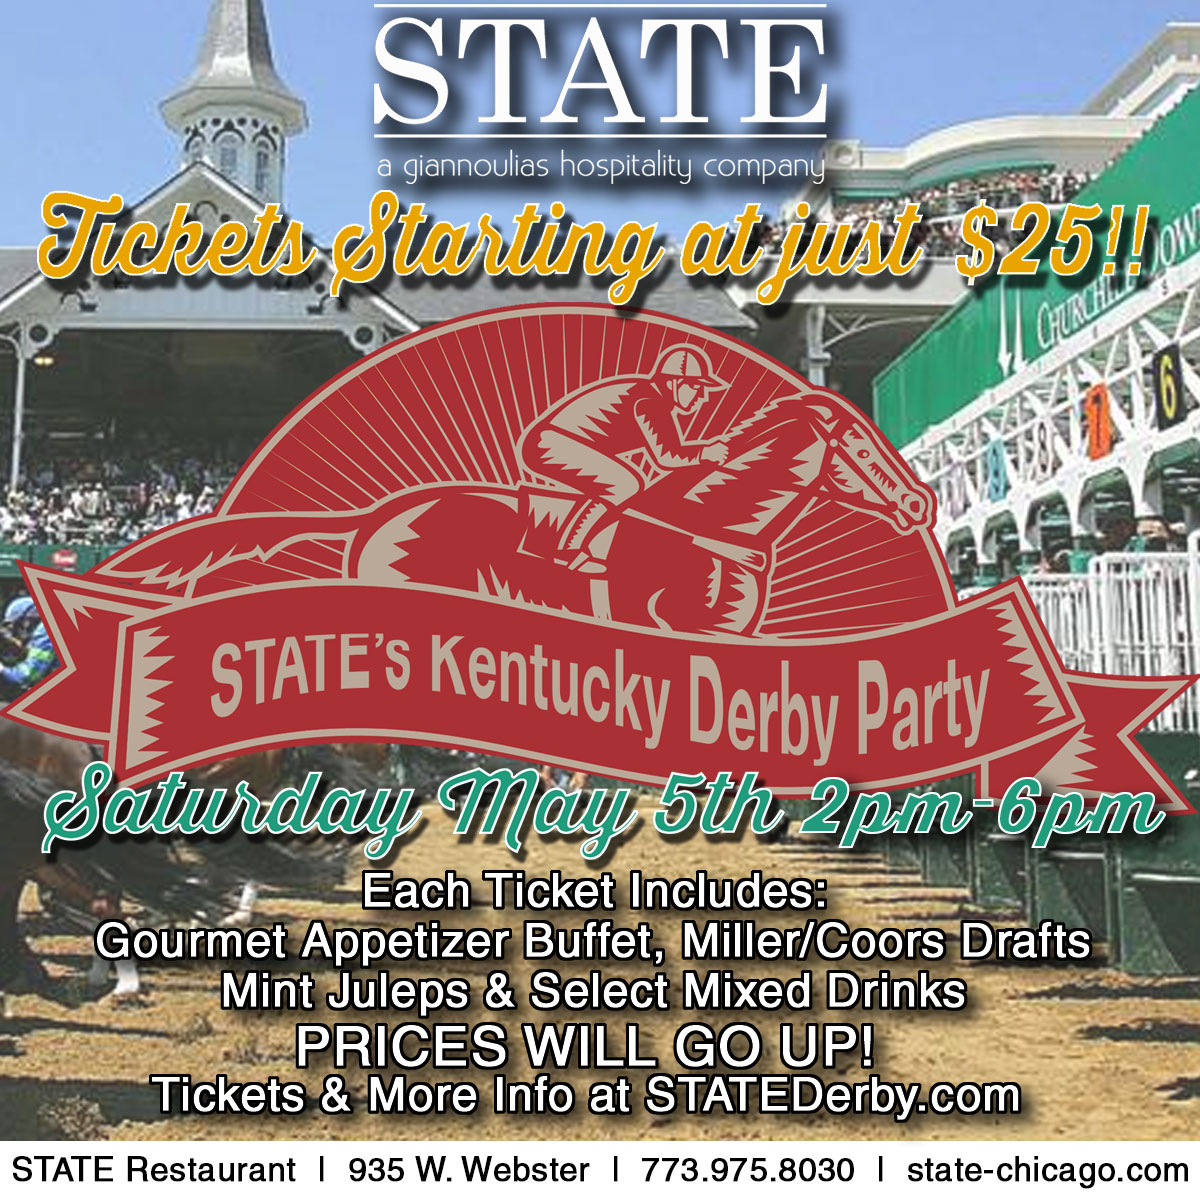 State Restaurant Kentucky Derby Party - Each Ticket Includes: Gourmet Appetizer Buffet, Miller/Coors Drafts, Mint Juleps & Select Mixed Drinks!